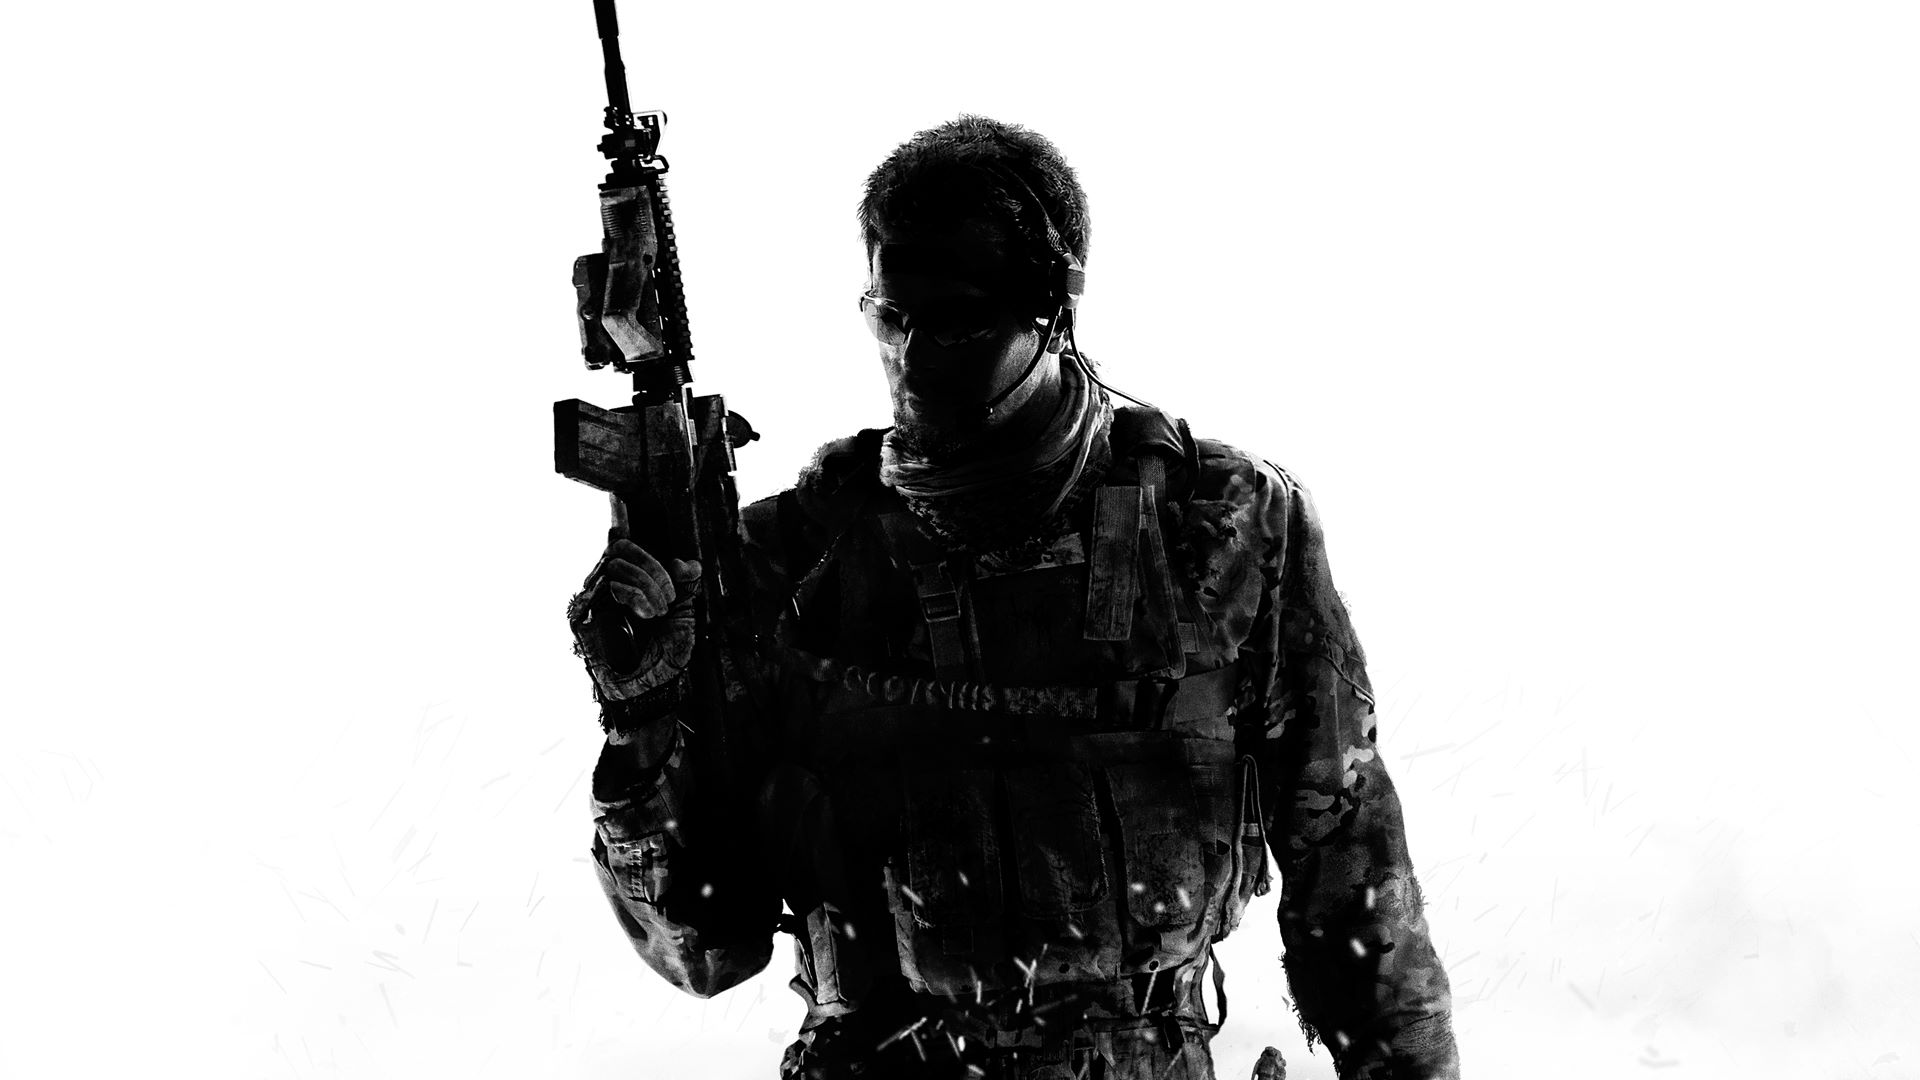 call of duty modern warfare 2 online free play no download